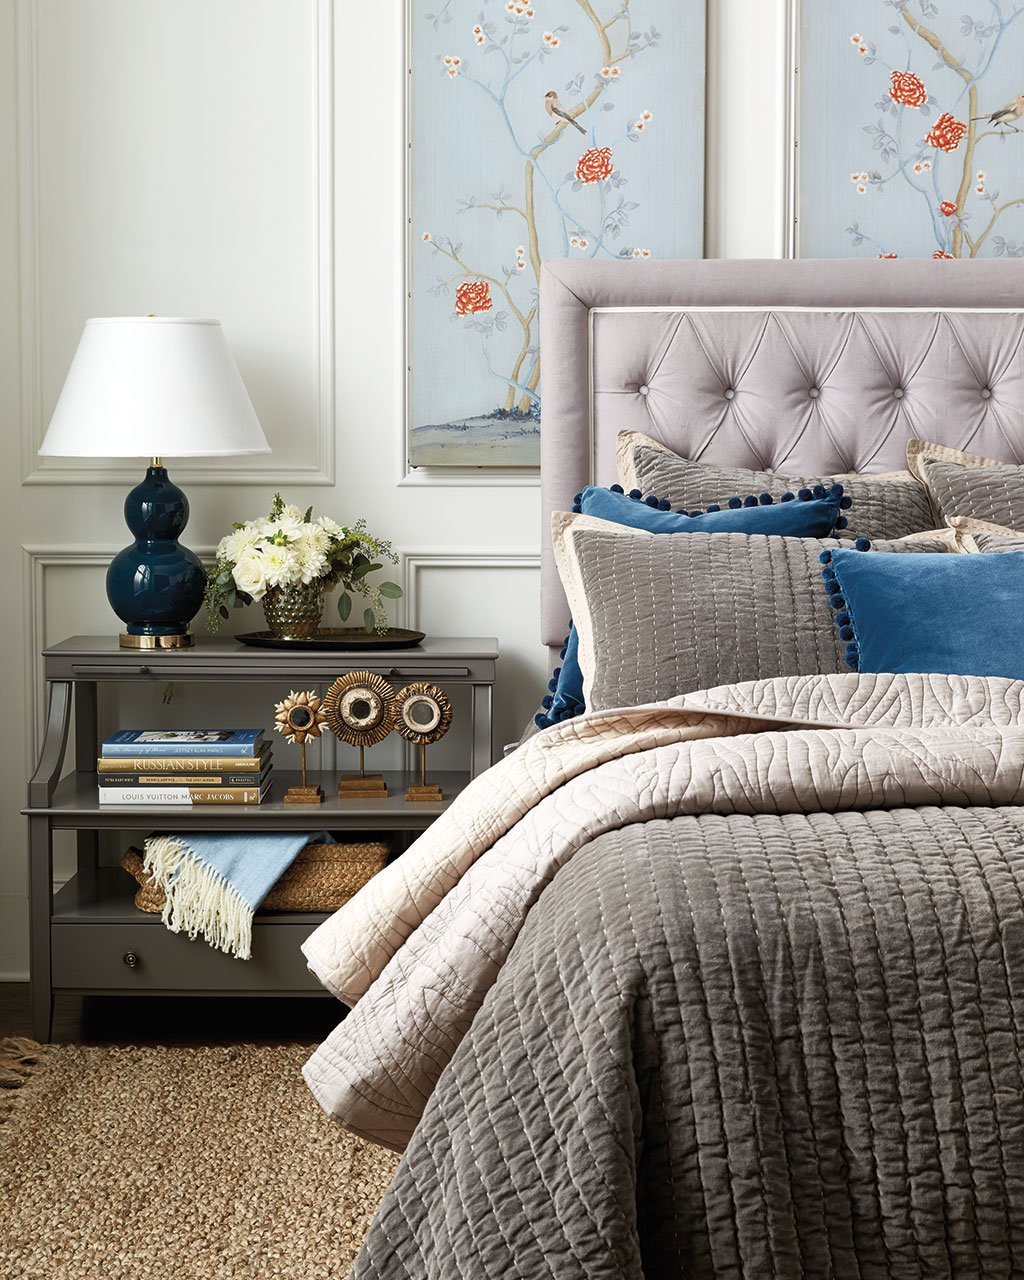 navy the new neutral how to decorate shop braided jute rug sidney open side table jardin en bleu art lucca velvet stitched quilt faux bois quilt giselle tufted headboard queen ballard